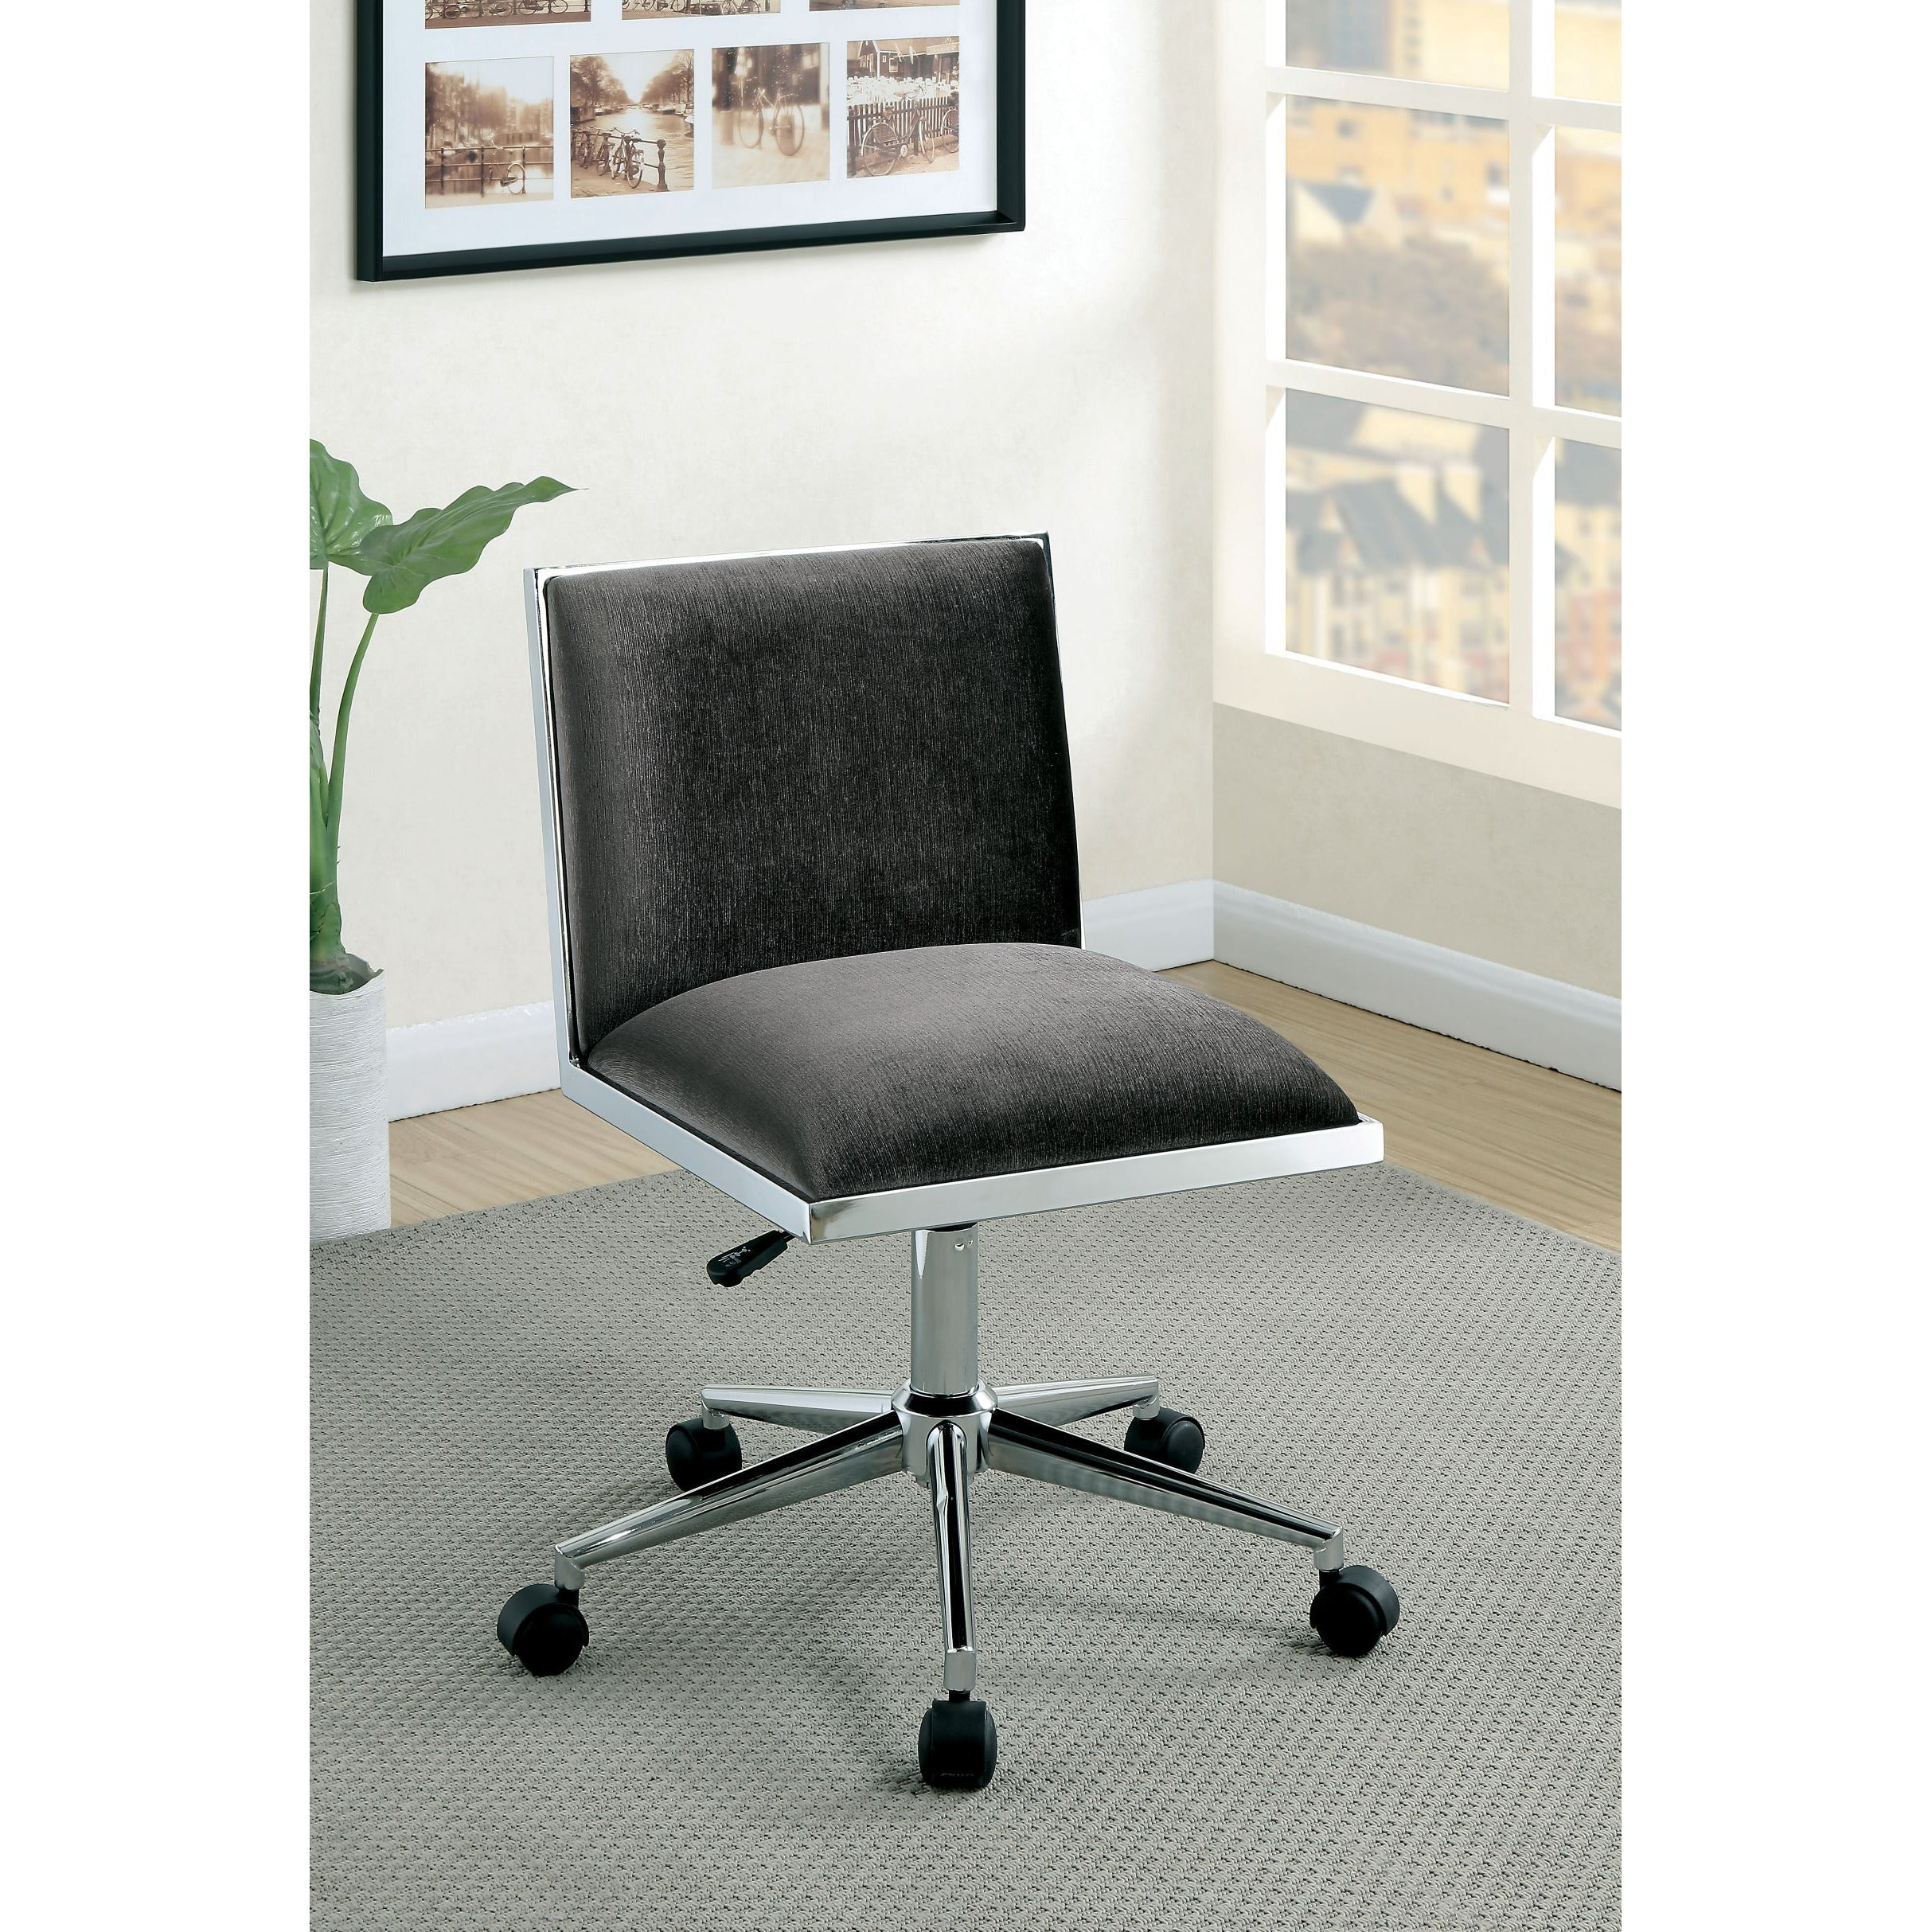 Furniture of America Contemporary Chromed Adjustable Office Chair In Gray